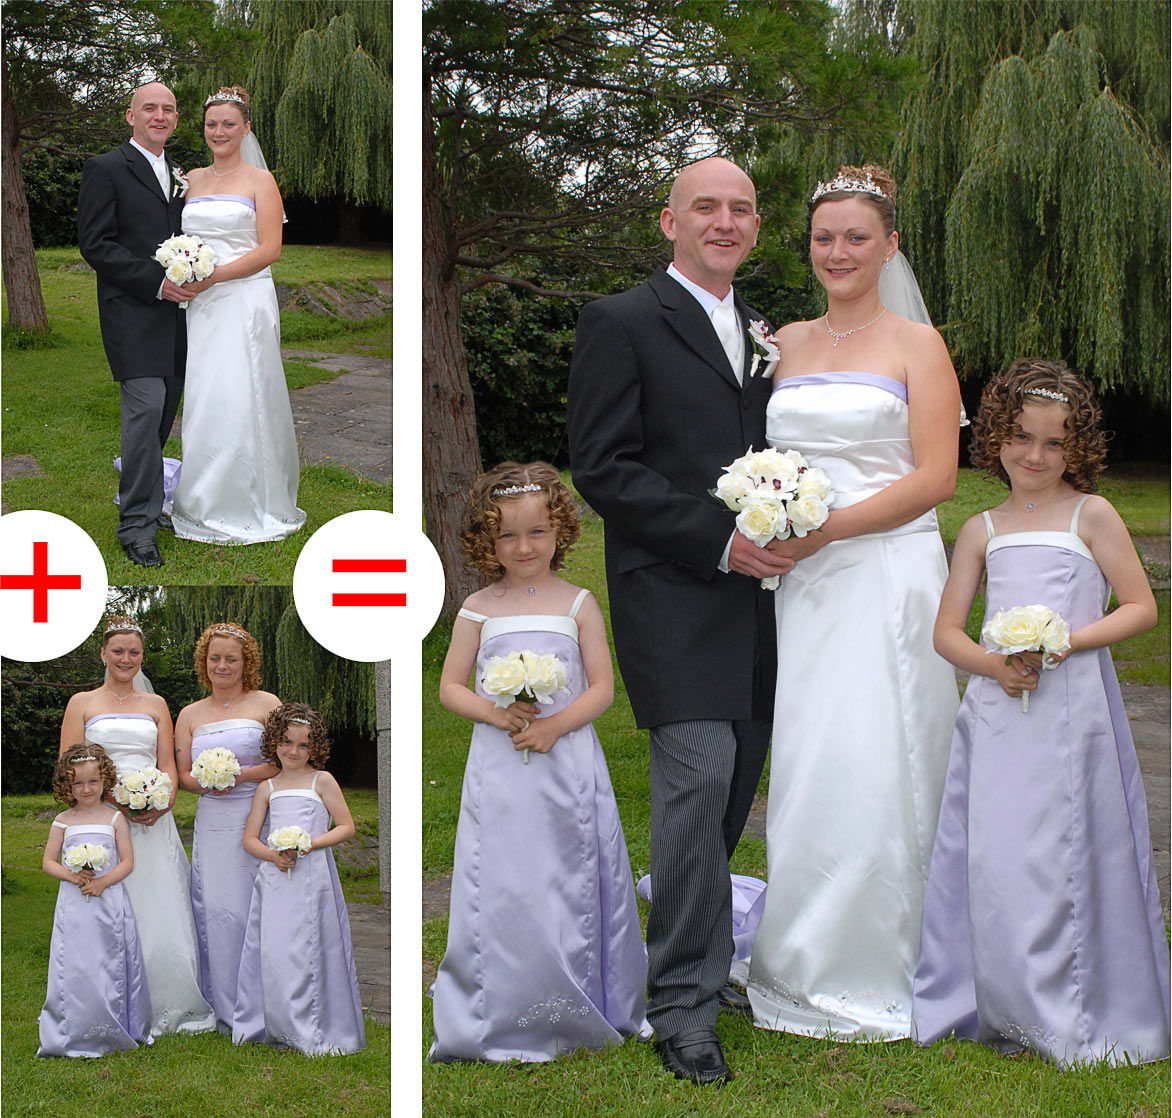 Wedding photography useful tip